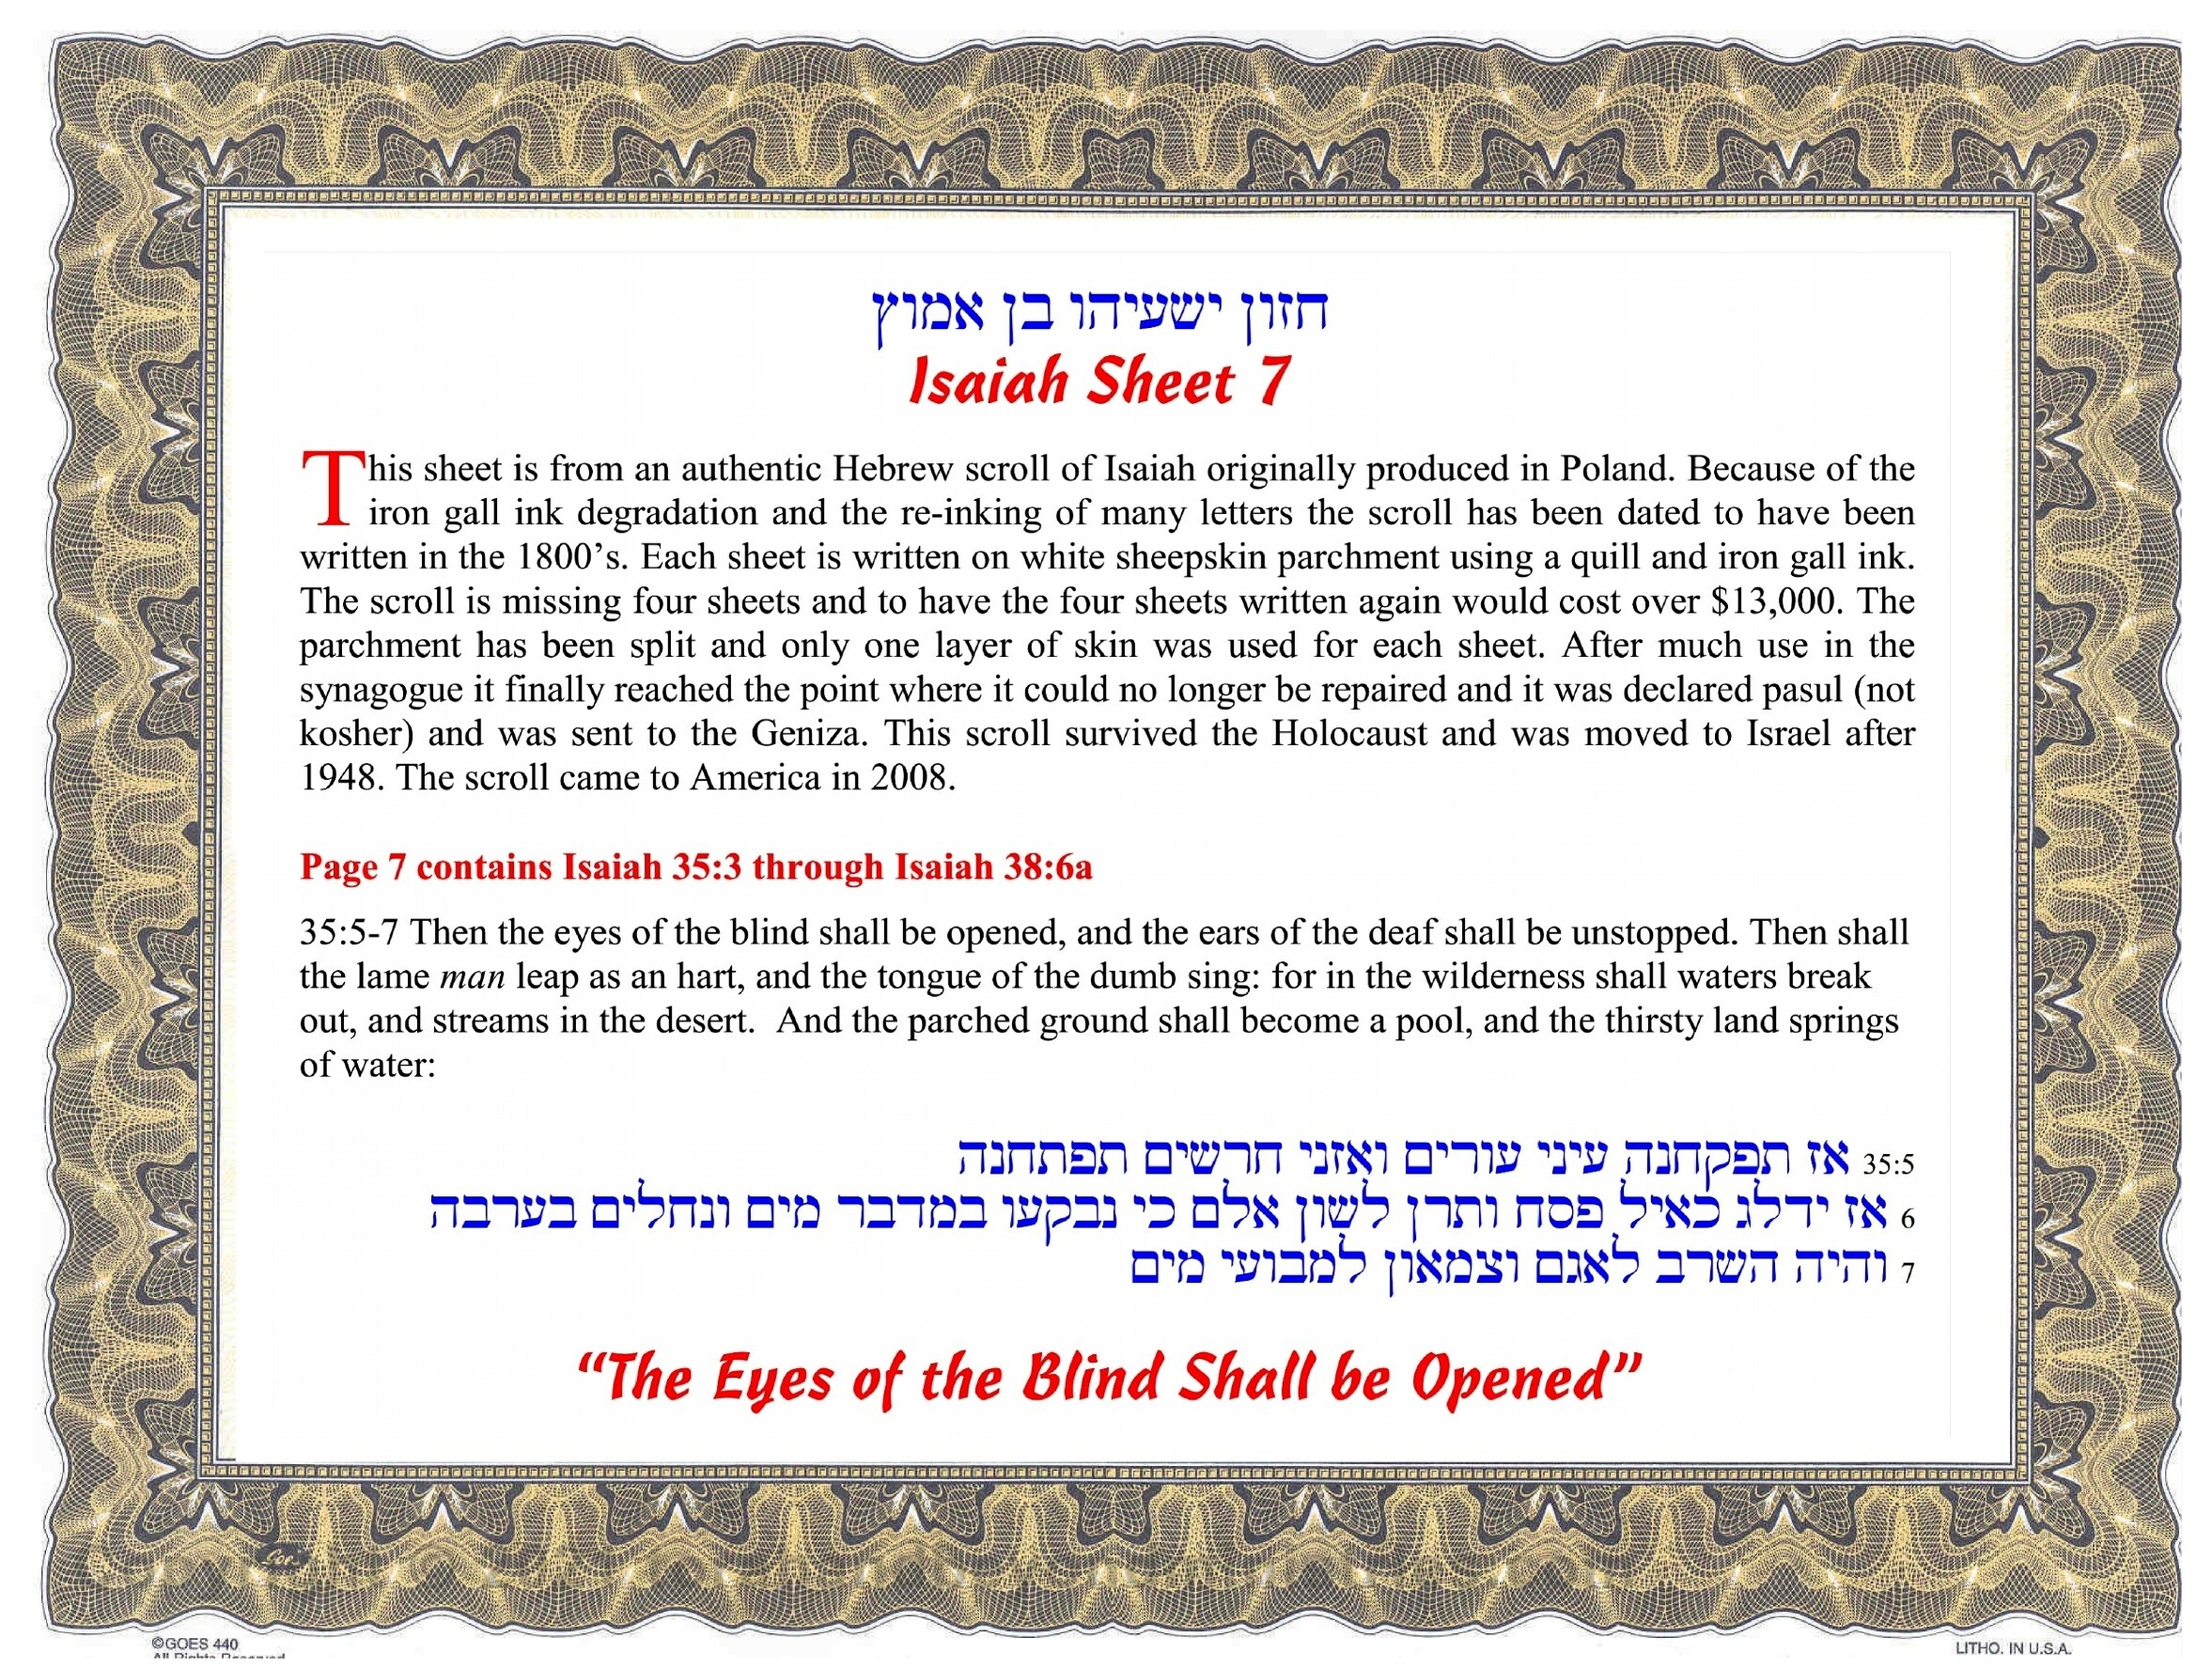 Information about this Hebrew Scroll of Isaiah